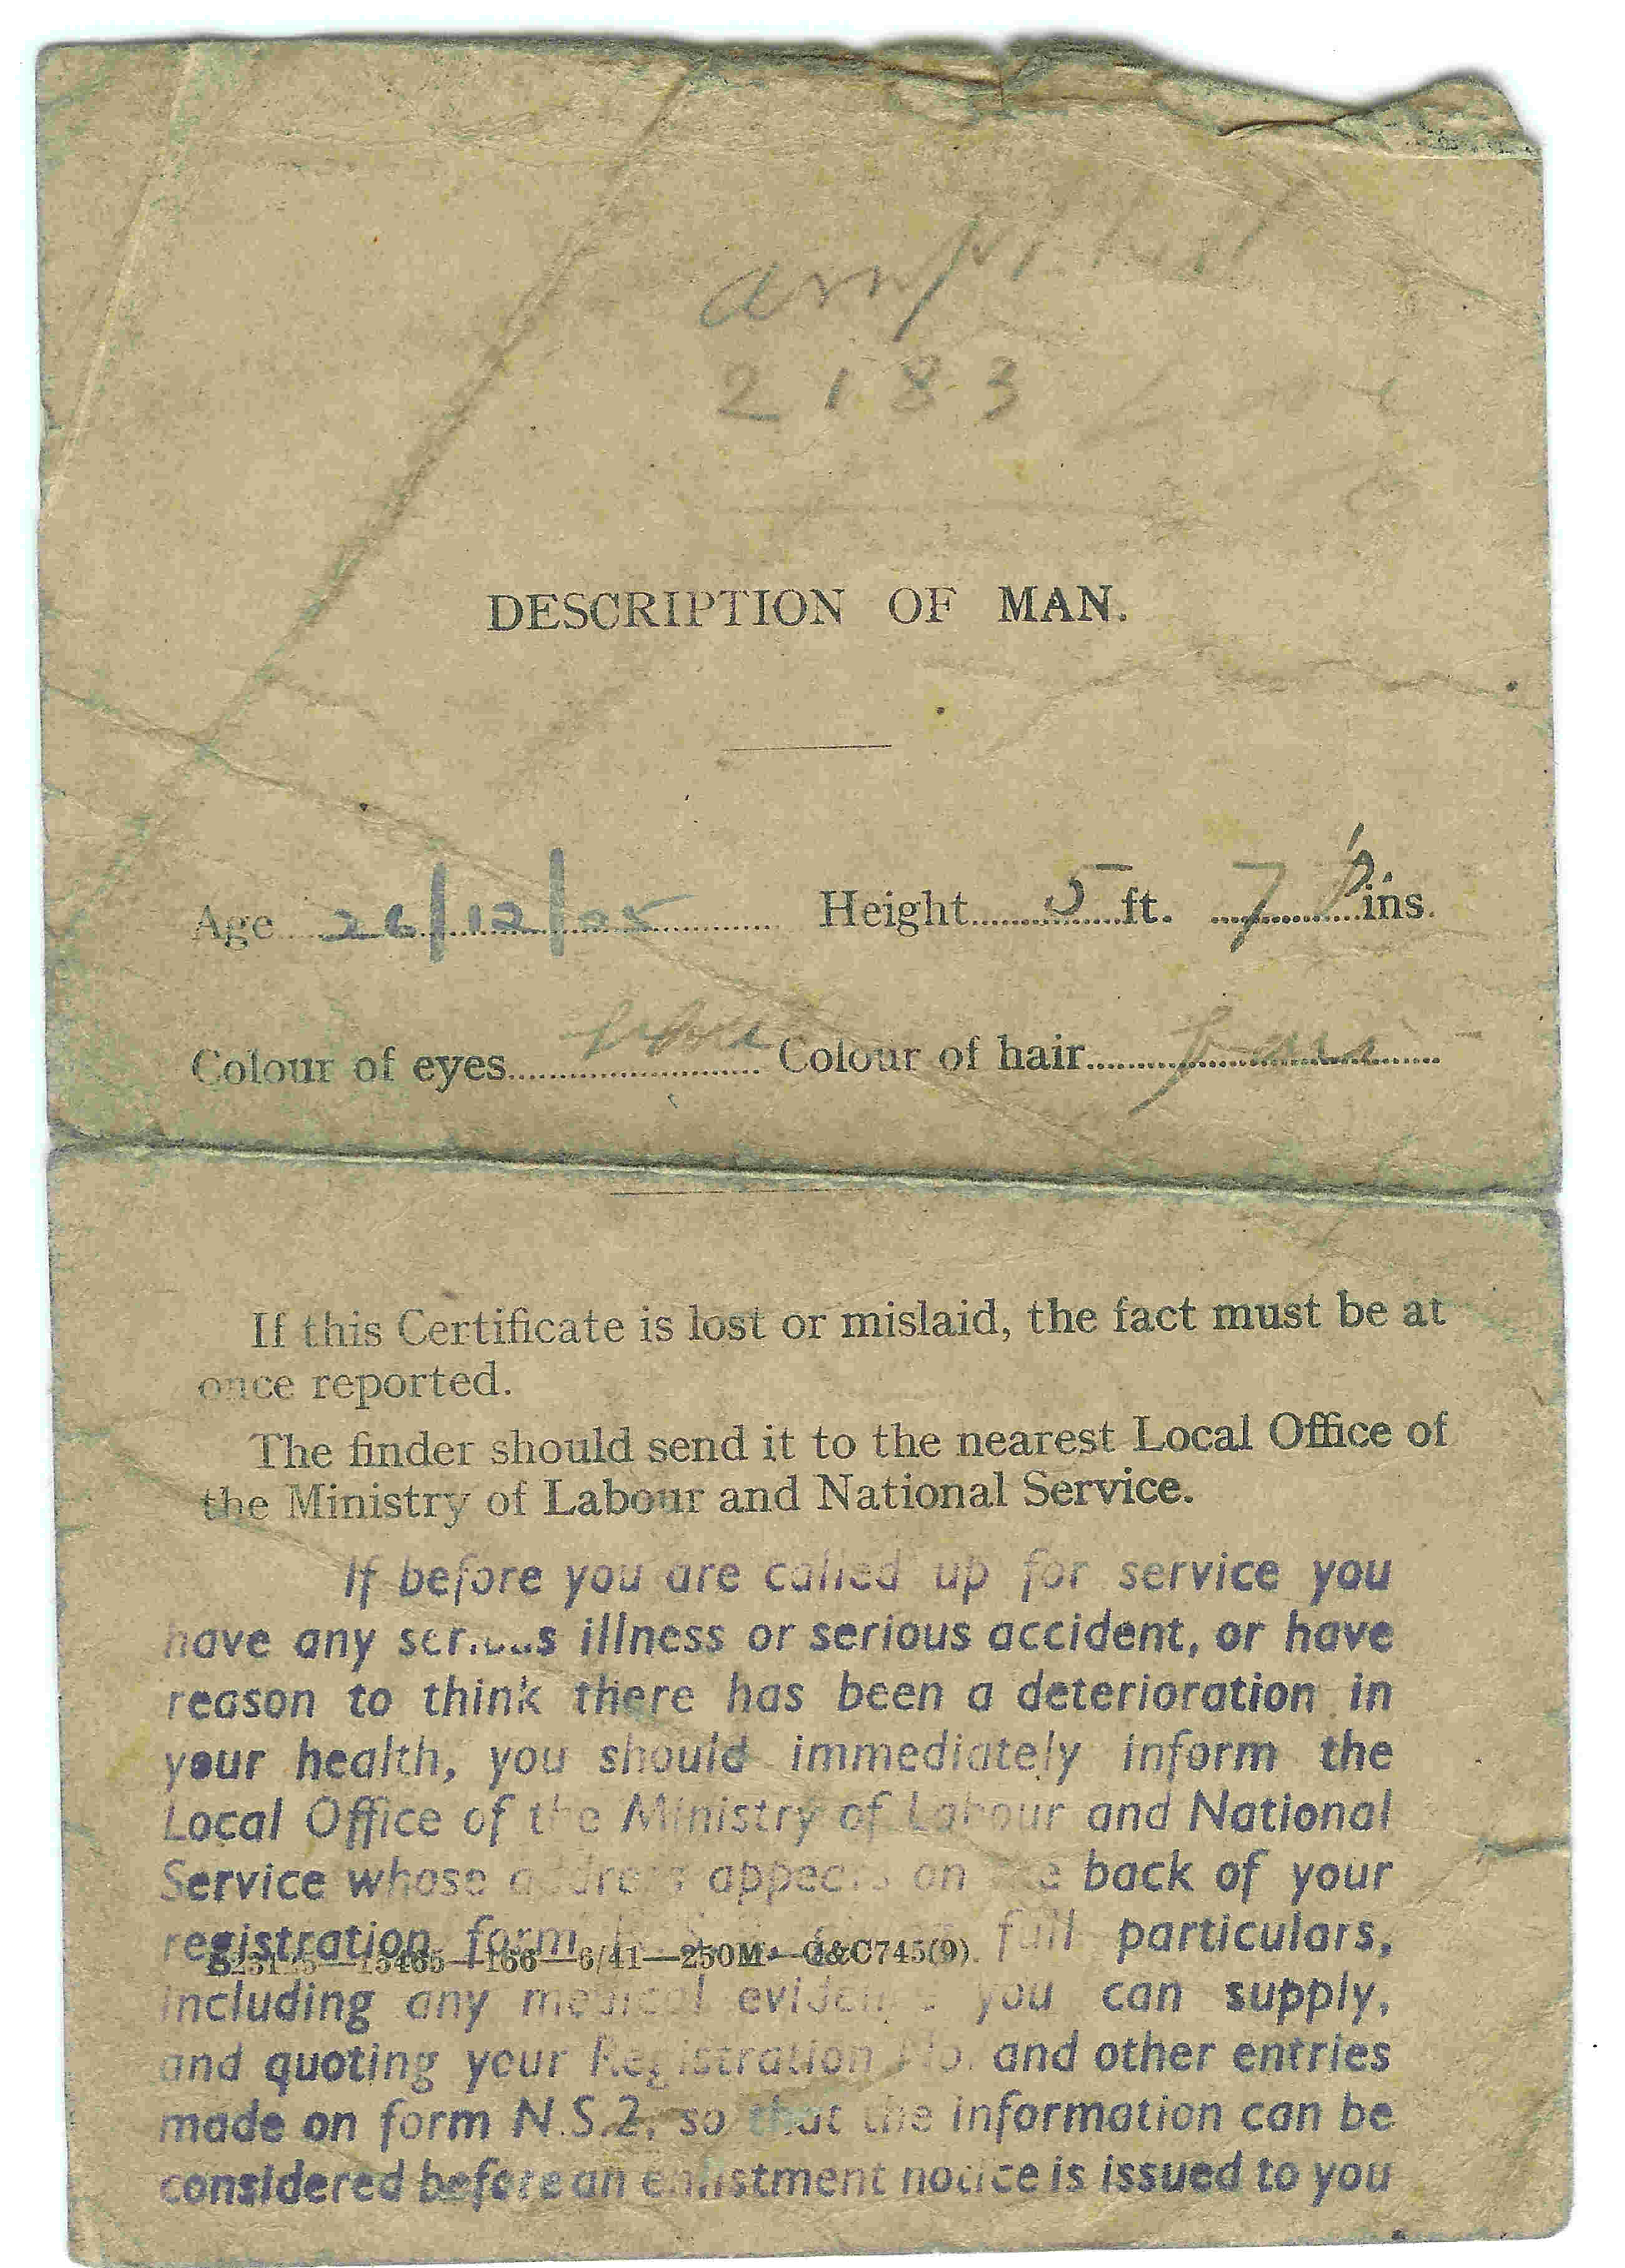 On the rear of the Grade Card was the Description of the man and instructions